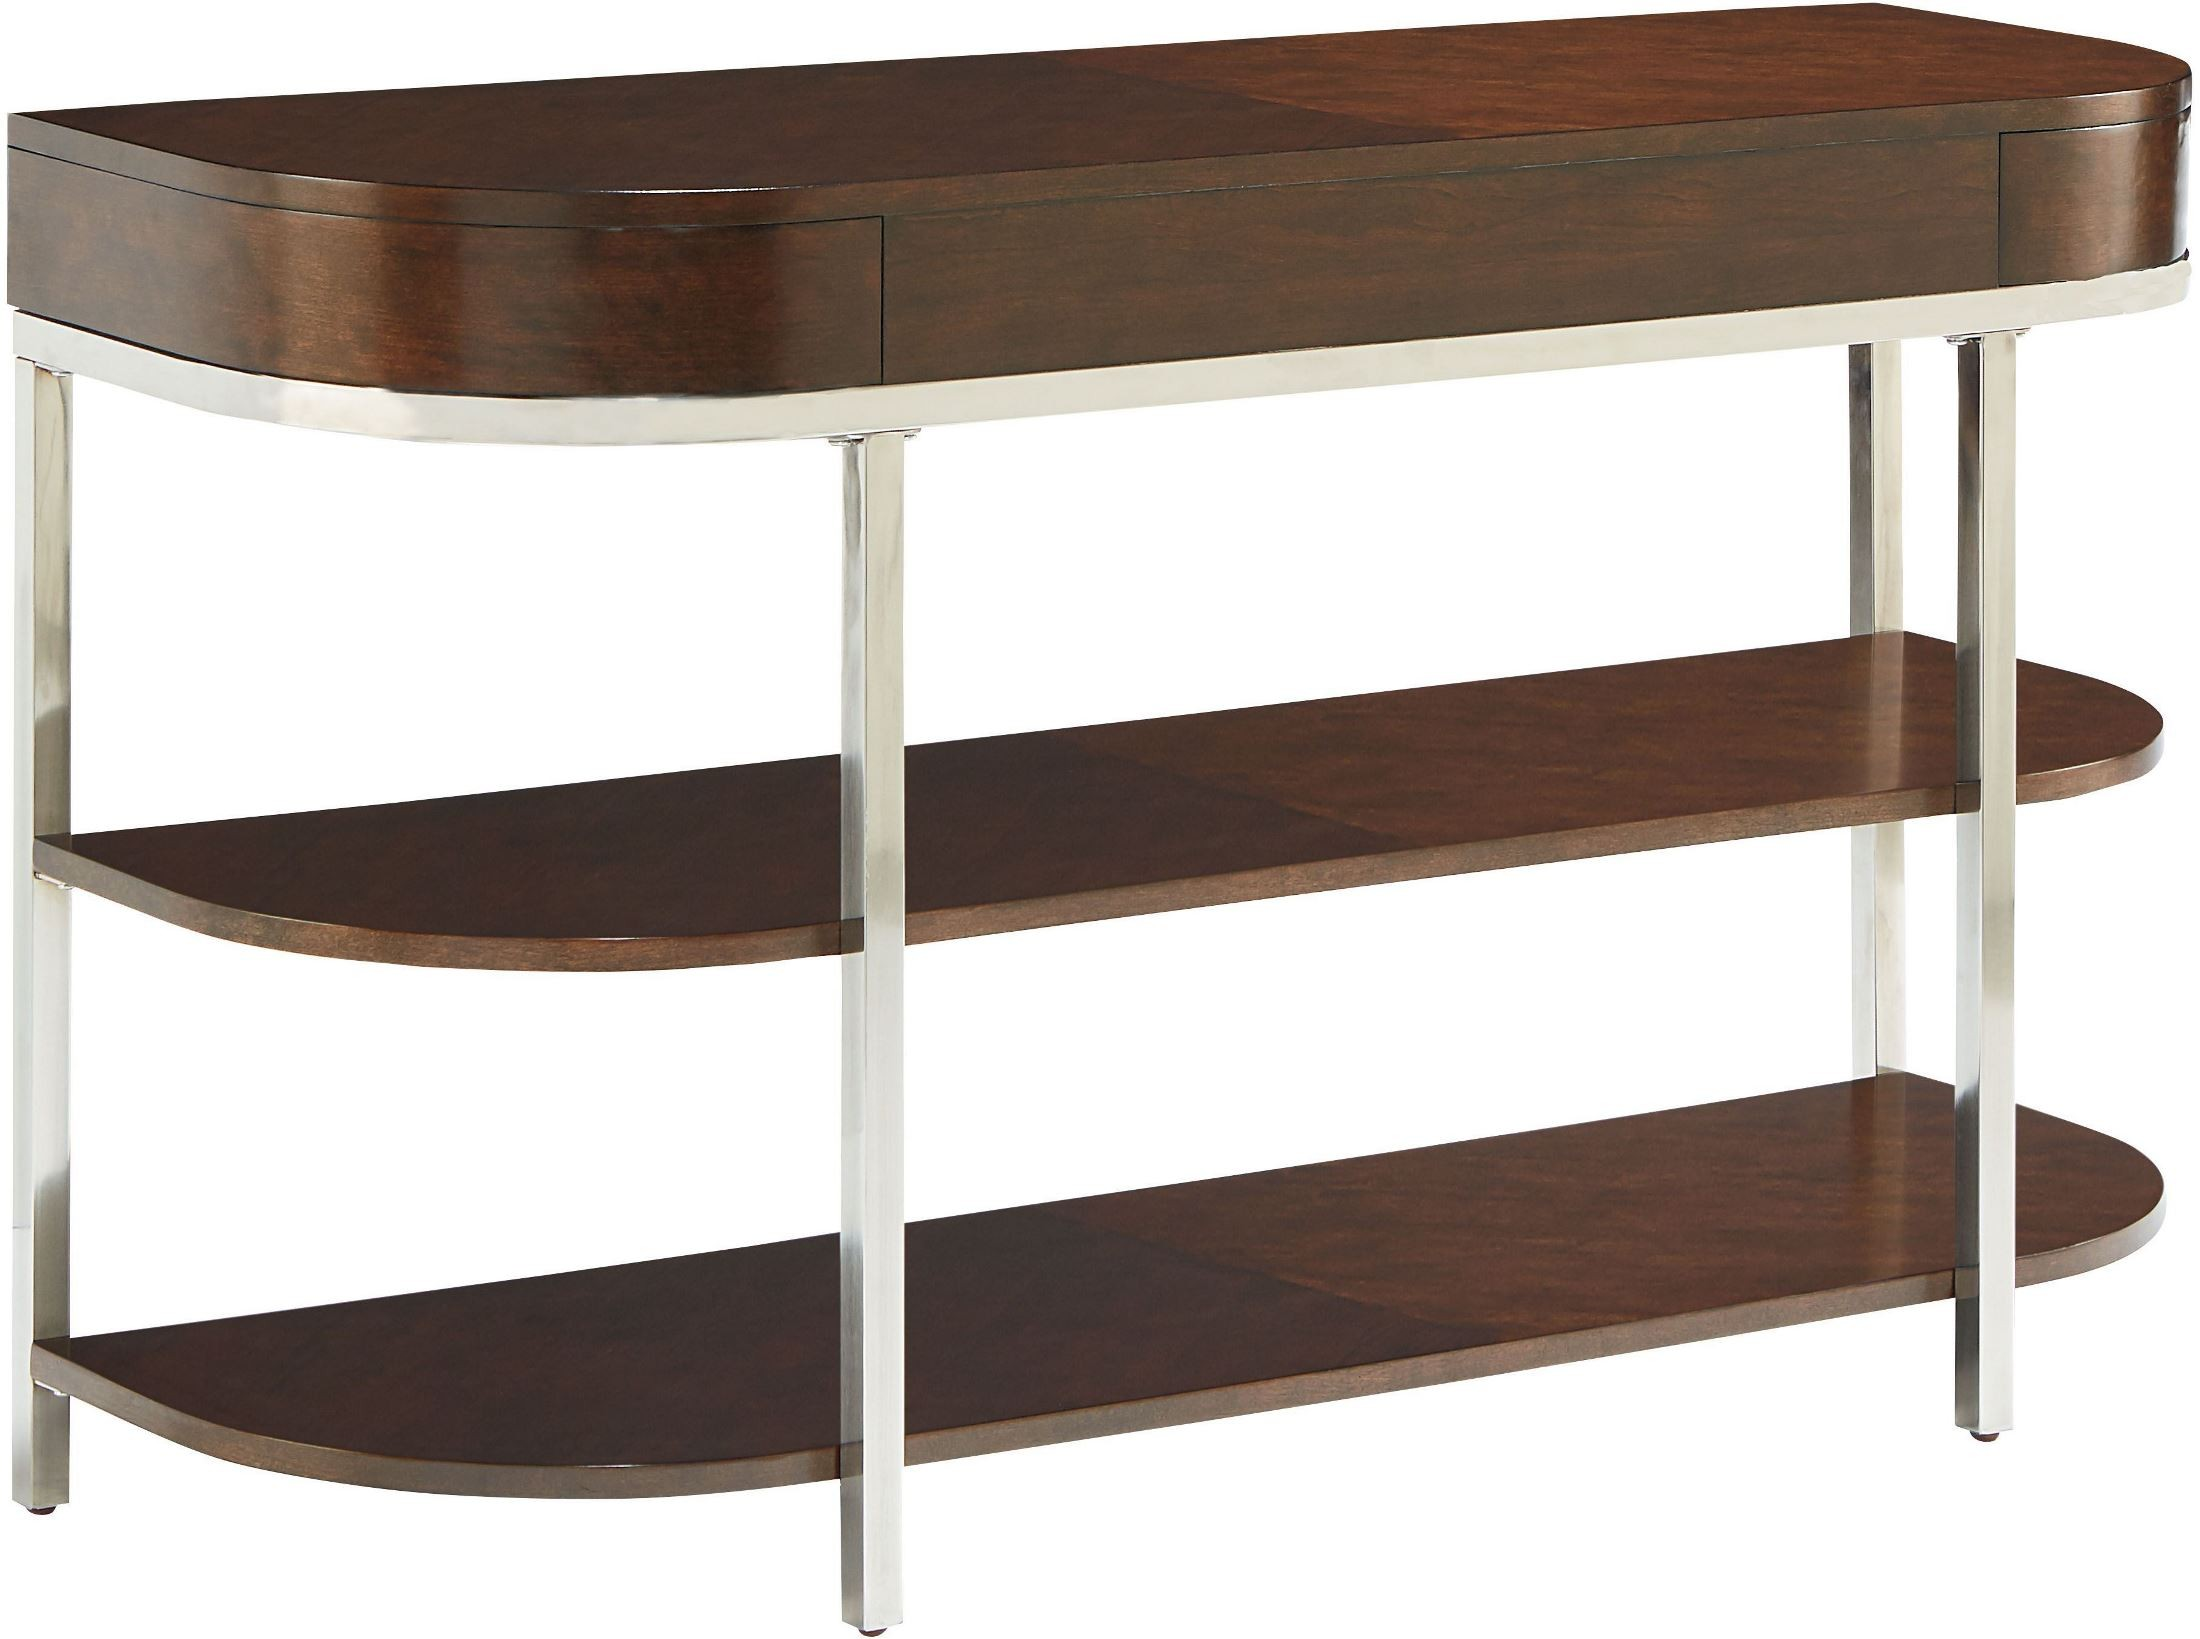 Mira deep lustrous tobacco brown console table 20426 for 10 deep sofa table